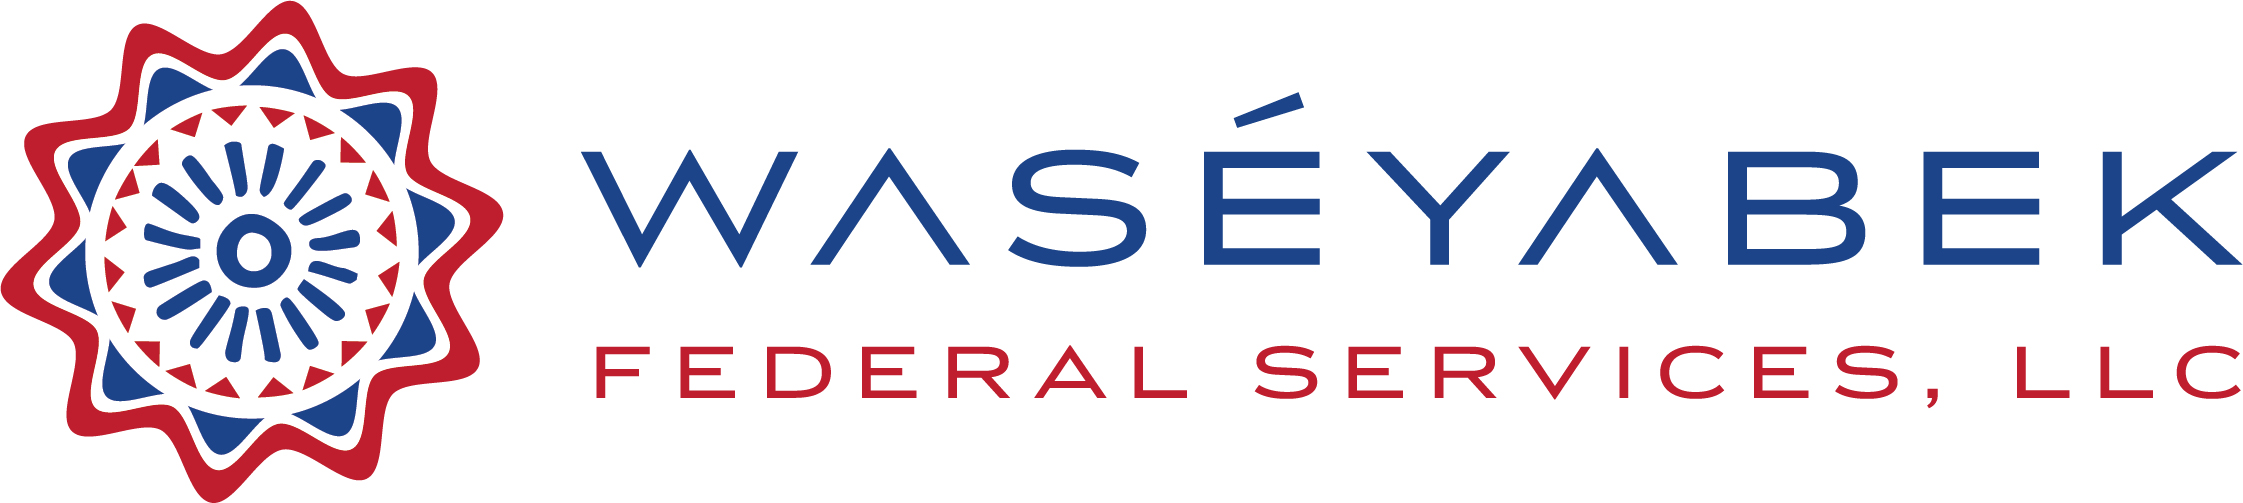 Waseyabek_FederalServices_logo_color